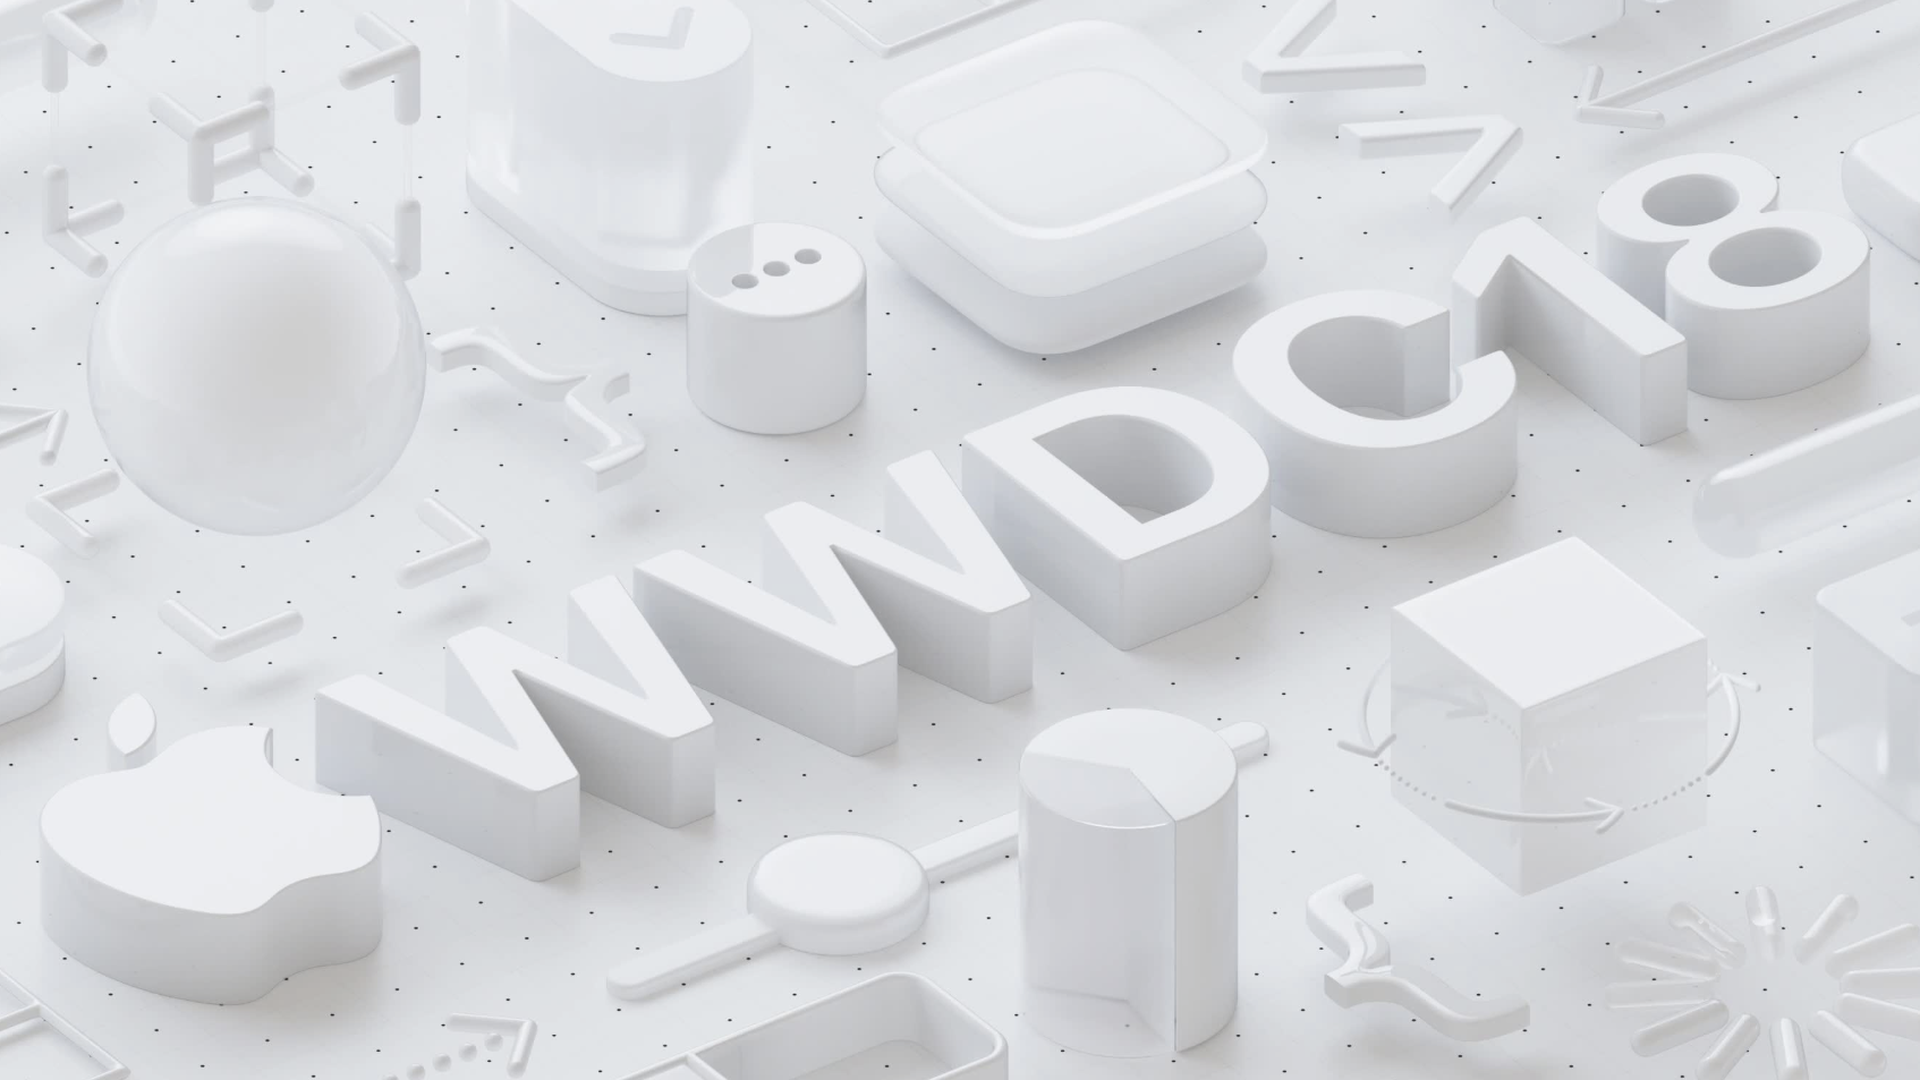 WWDC symbols from a screenshot from Apple's website